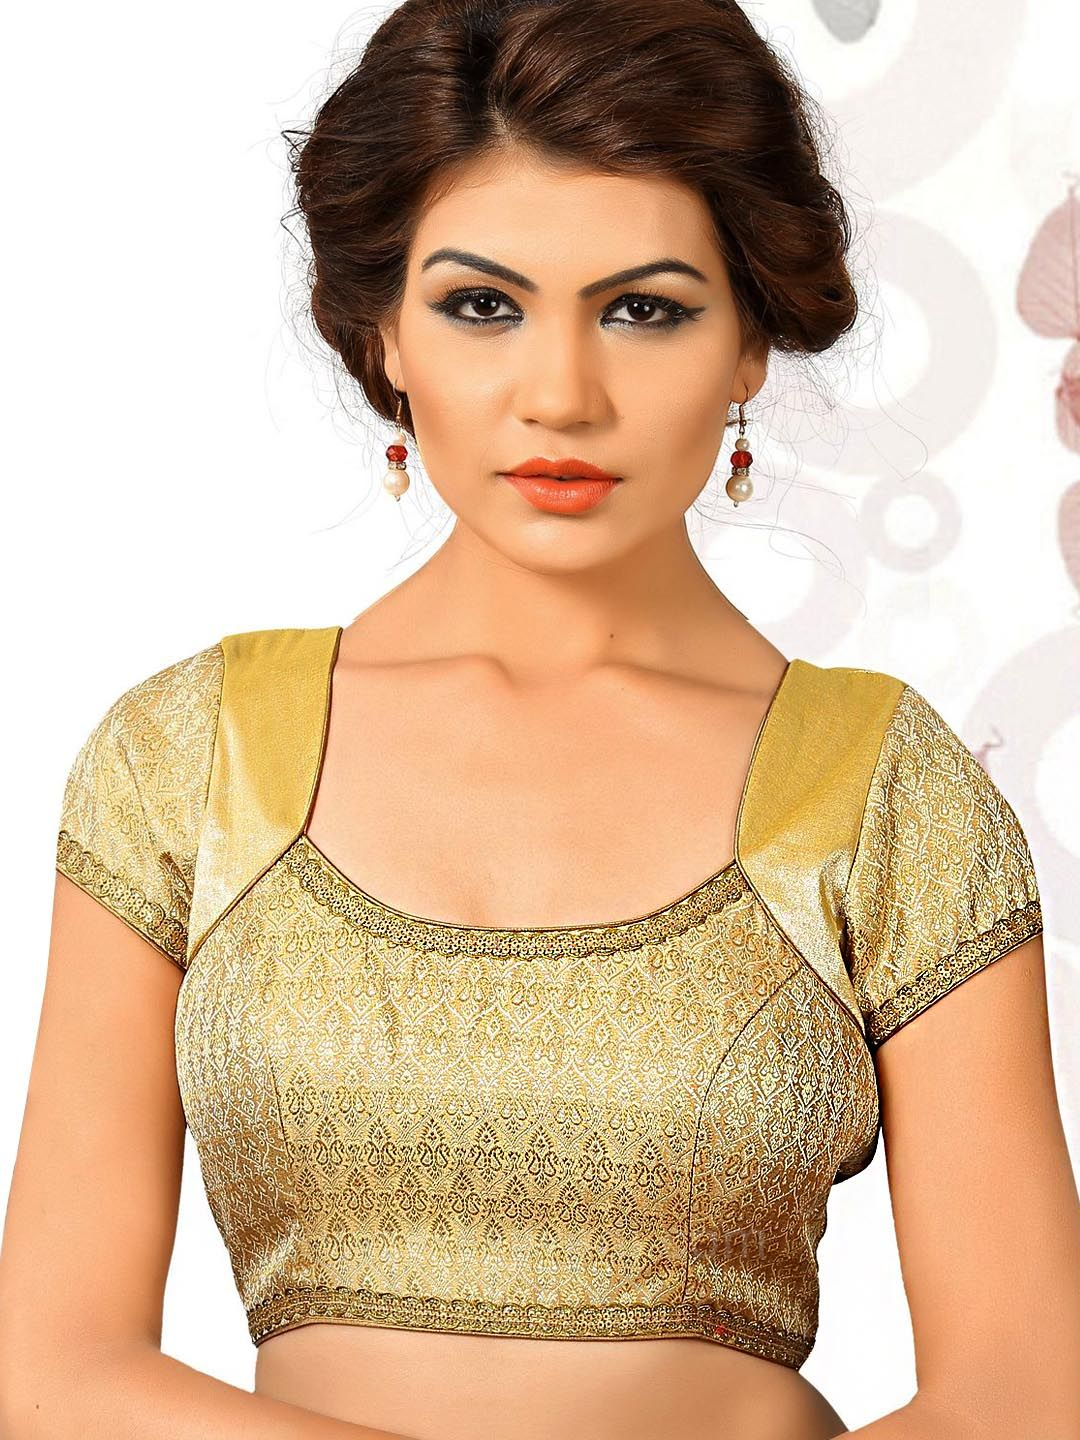 0185c3d3c71cef Designer Readymade Blouse in Golden color #rajwadi #designercholionline  #Indianblouses #Readycholiforsaree #Readymadeblouseonline